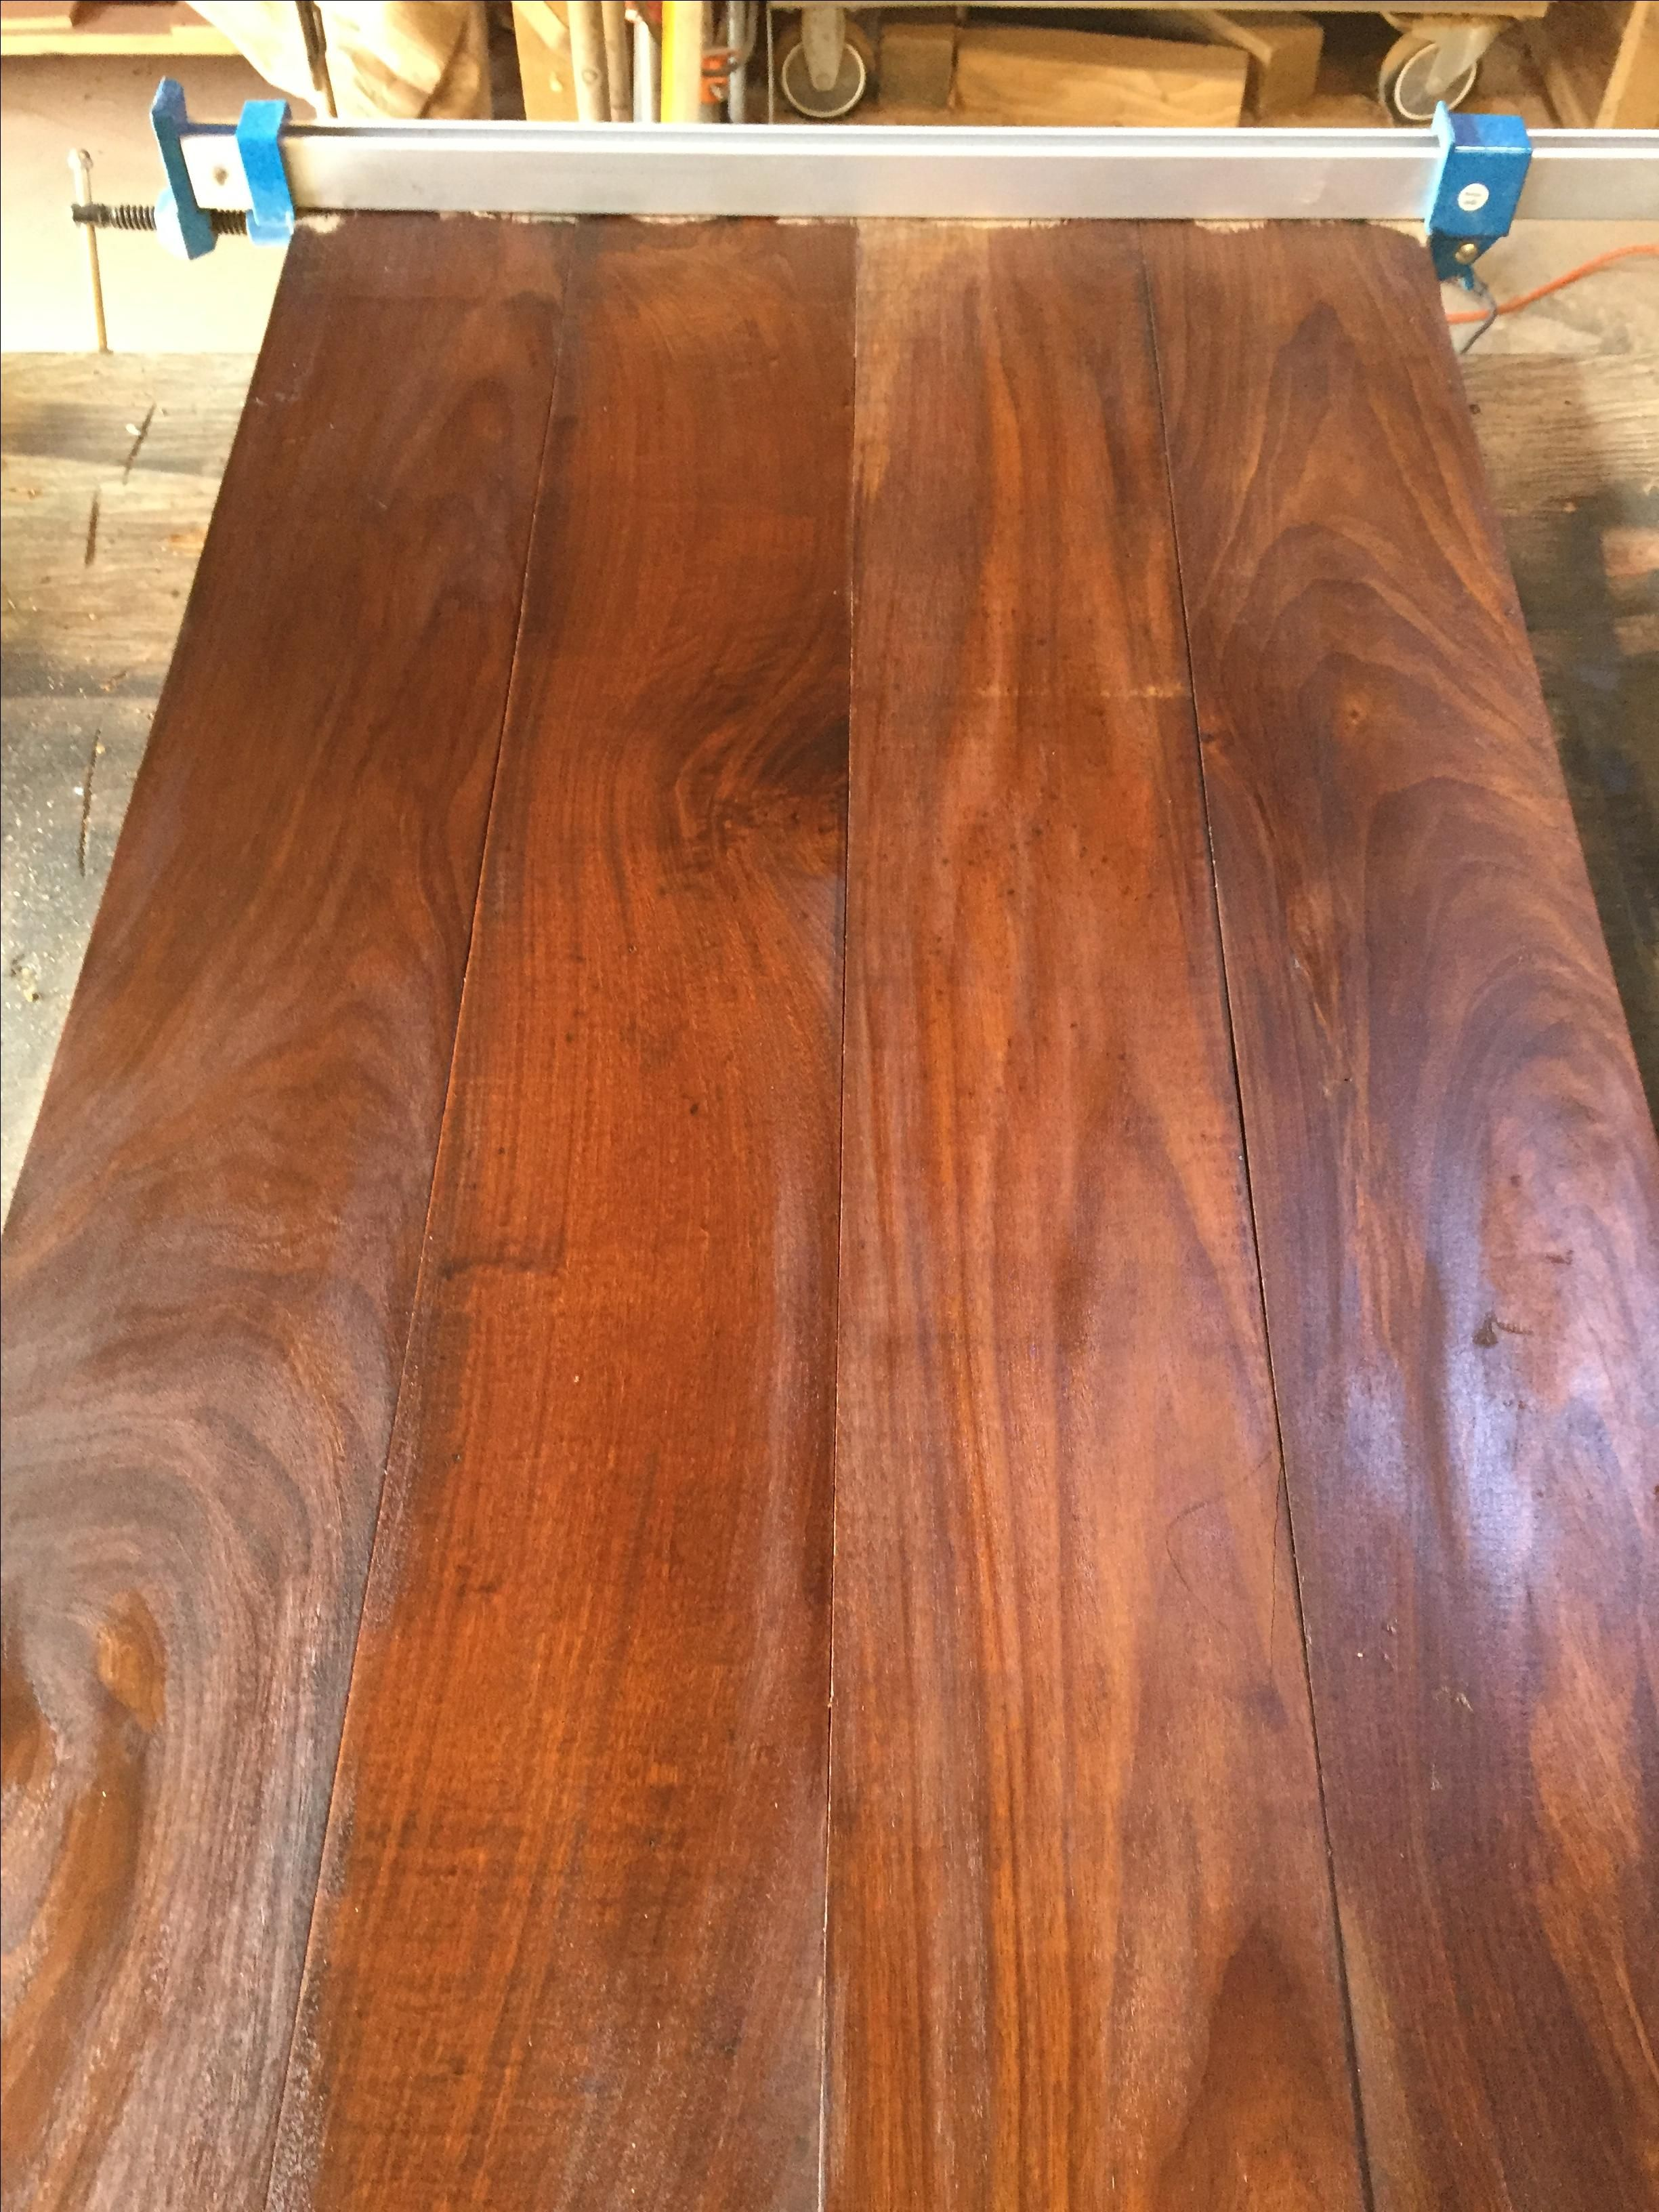 Custom Reclaimed Ipe Wood Tables By On The Flats Promotions Llc